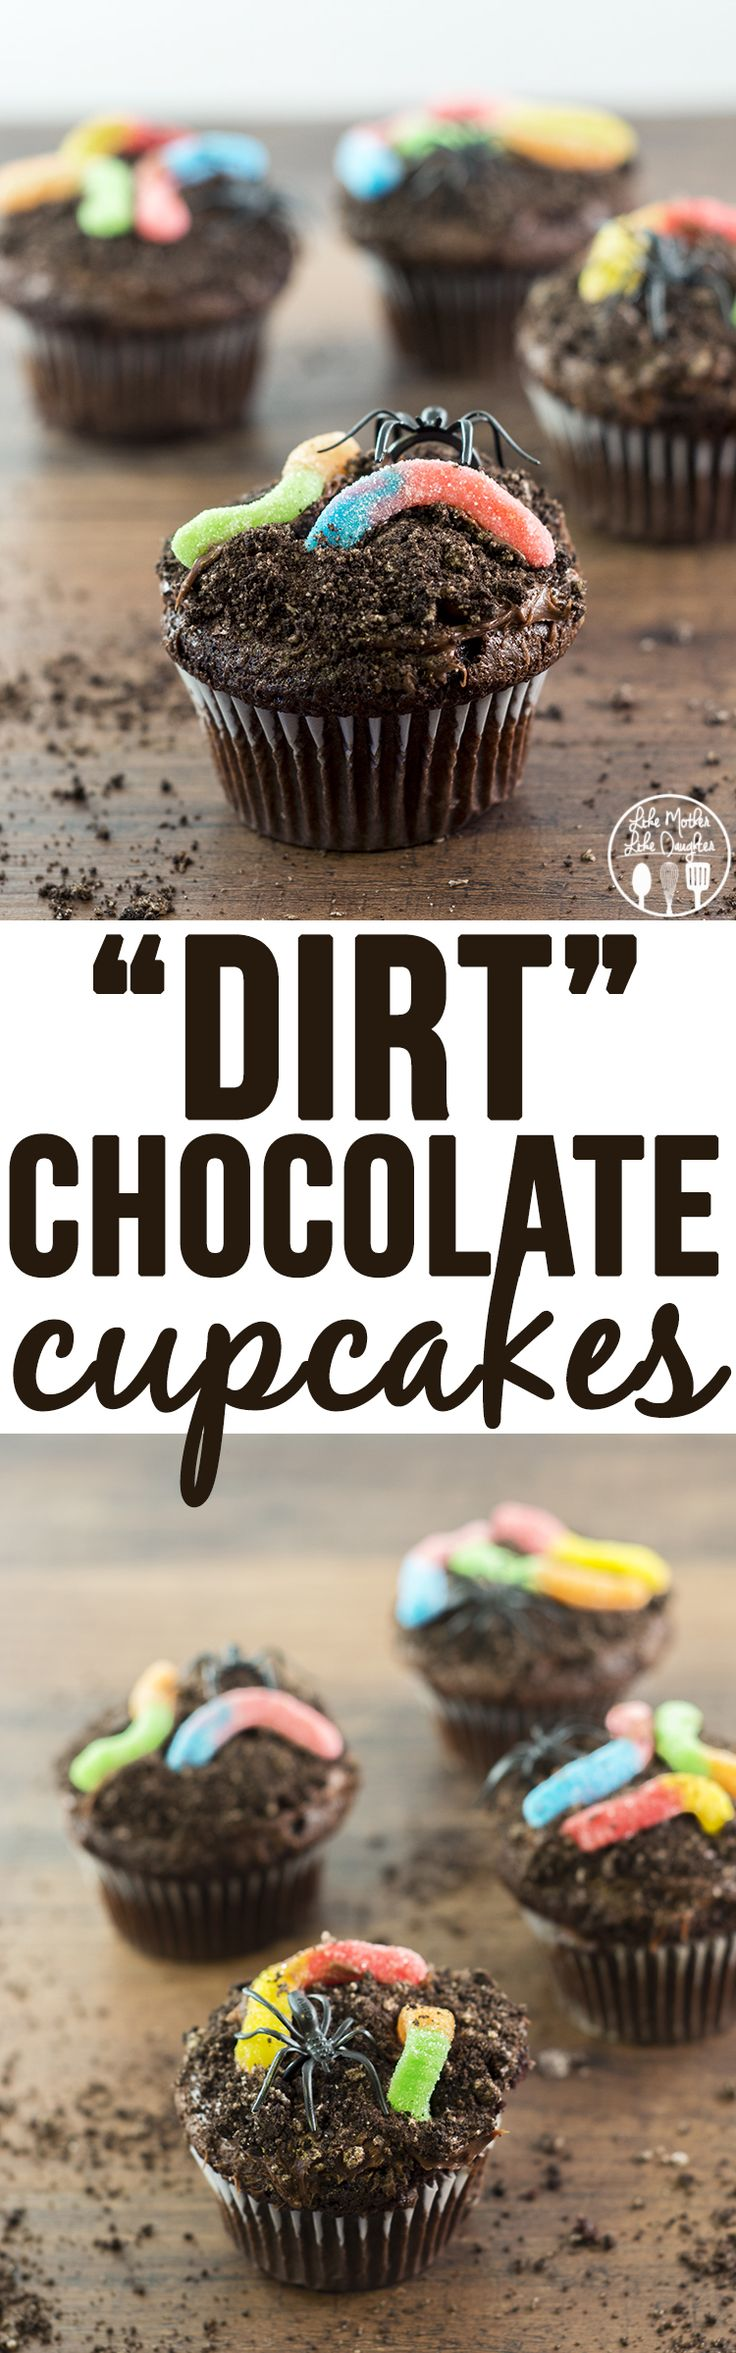 Things that look good to eat: Dirt Cupcakes - Like Mother Like Daughter